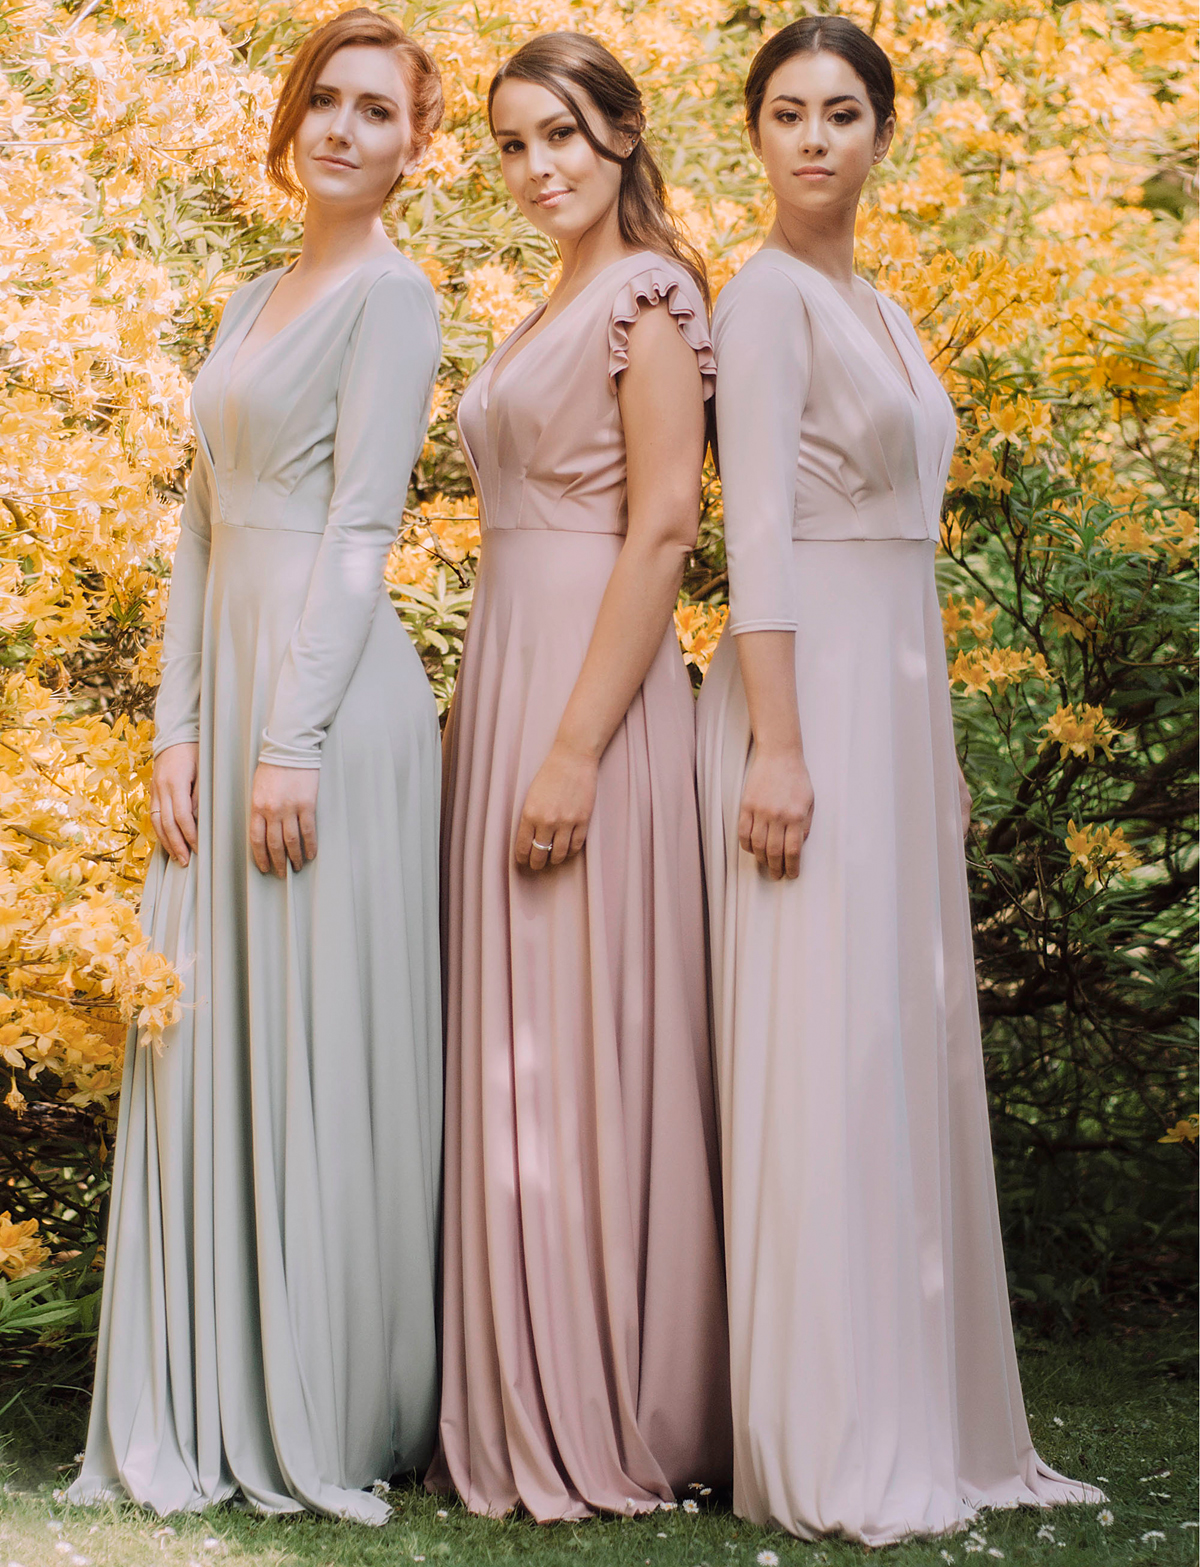 c59e6232610 Willow Pearl multiway bridesmaids dresses Fern dresses full length sleeves  in Sage ruffle sleeves in Dusky